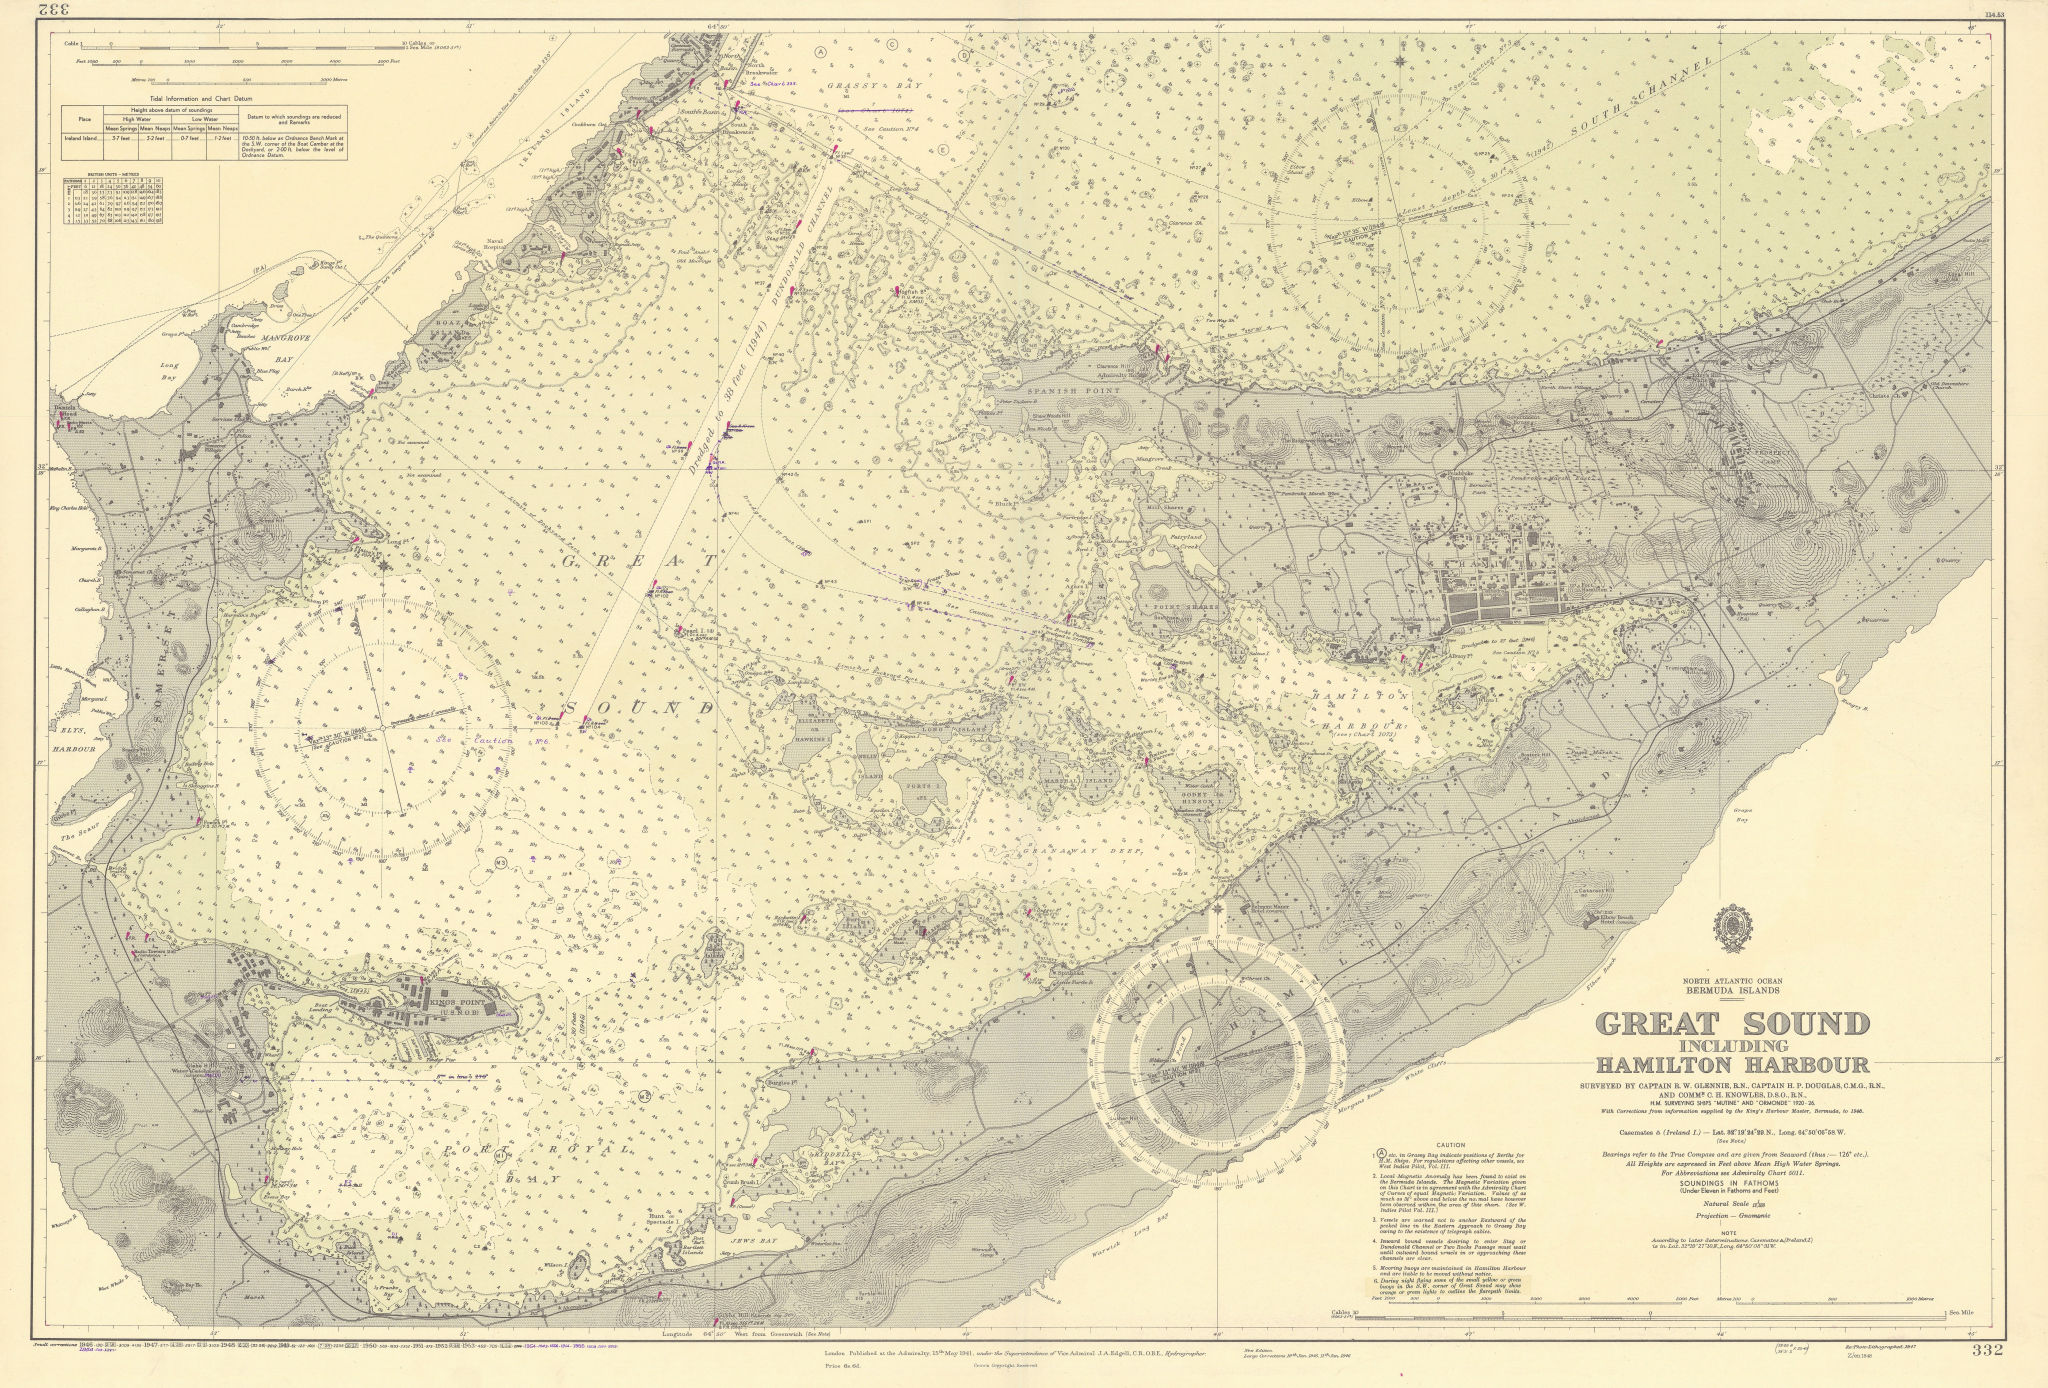 Bermuda Great Sound. Hamilton Harbour ADMIRALTY sea chart 1941 (1956) old map